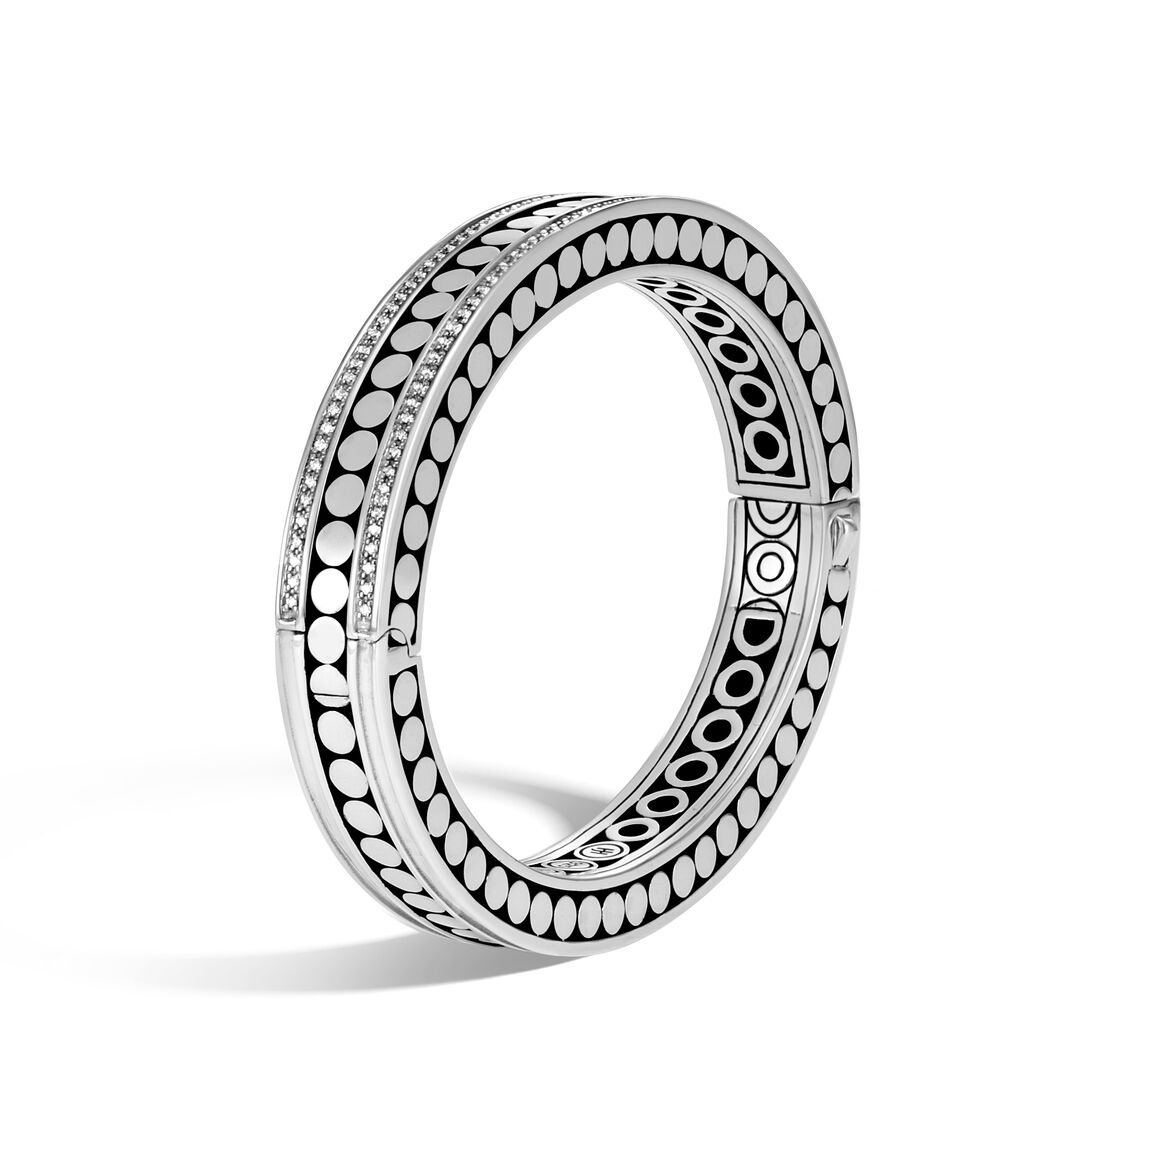 Dot Hinged Bangle in Silver with Diamonds